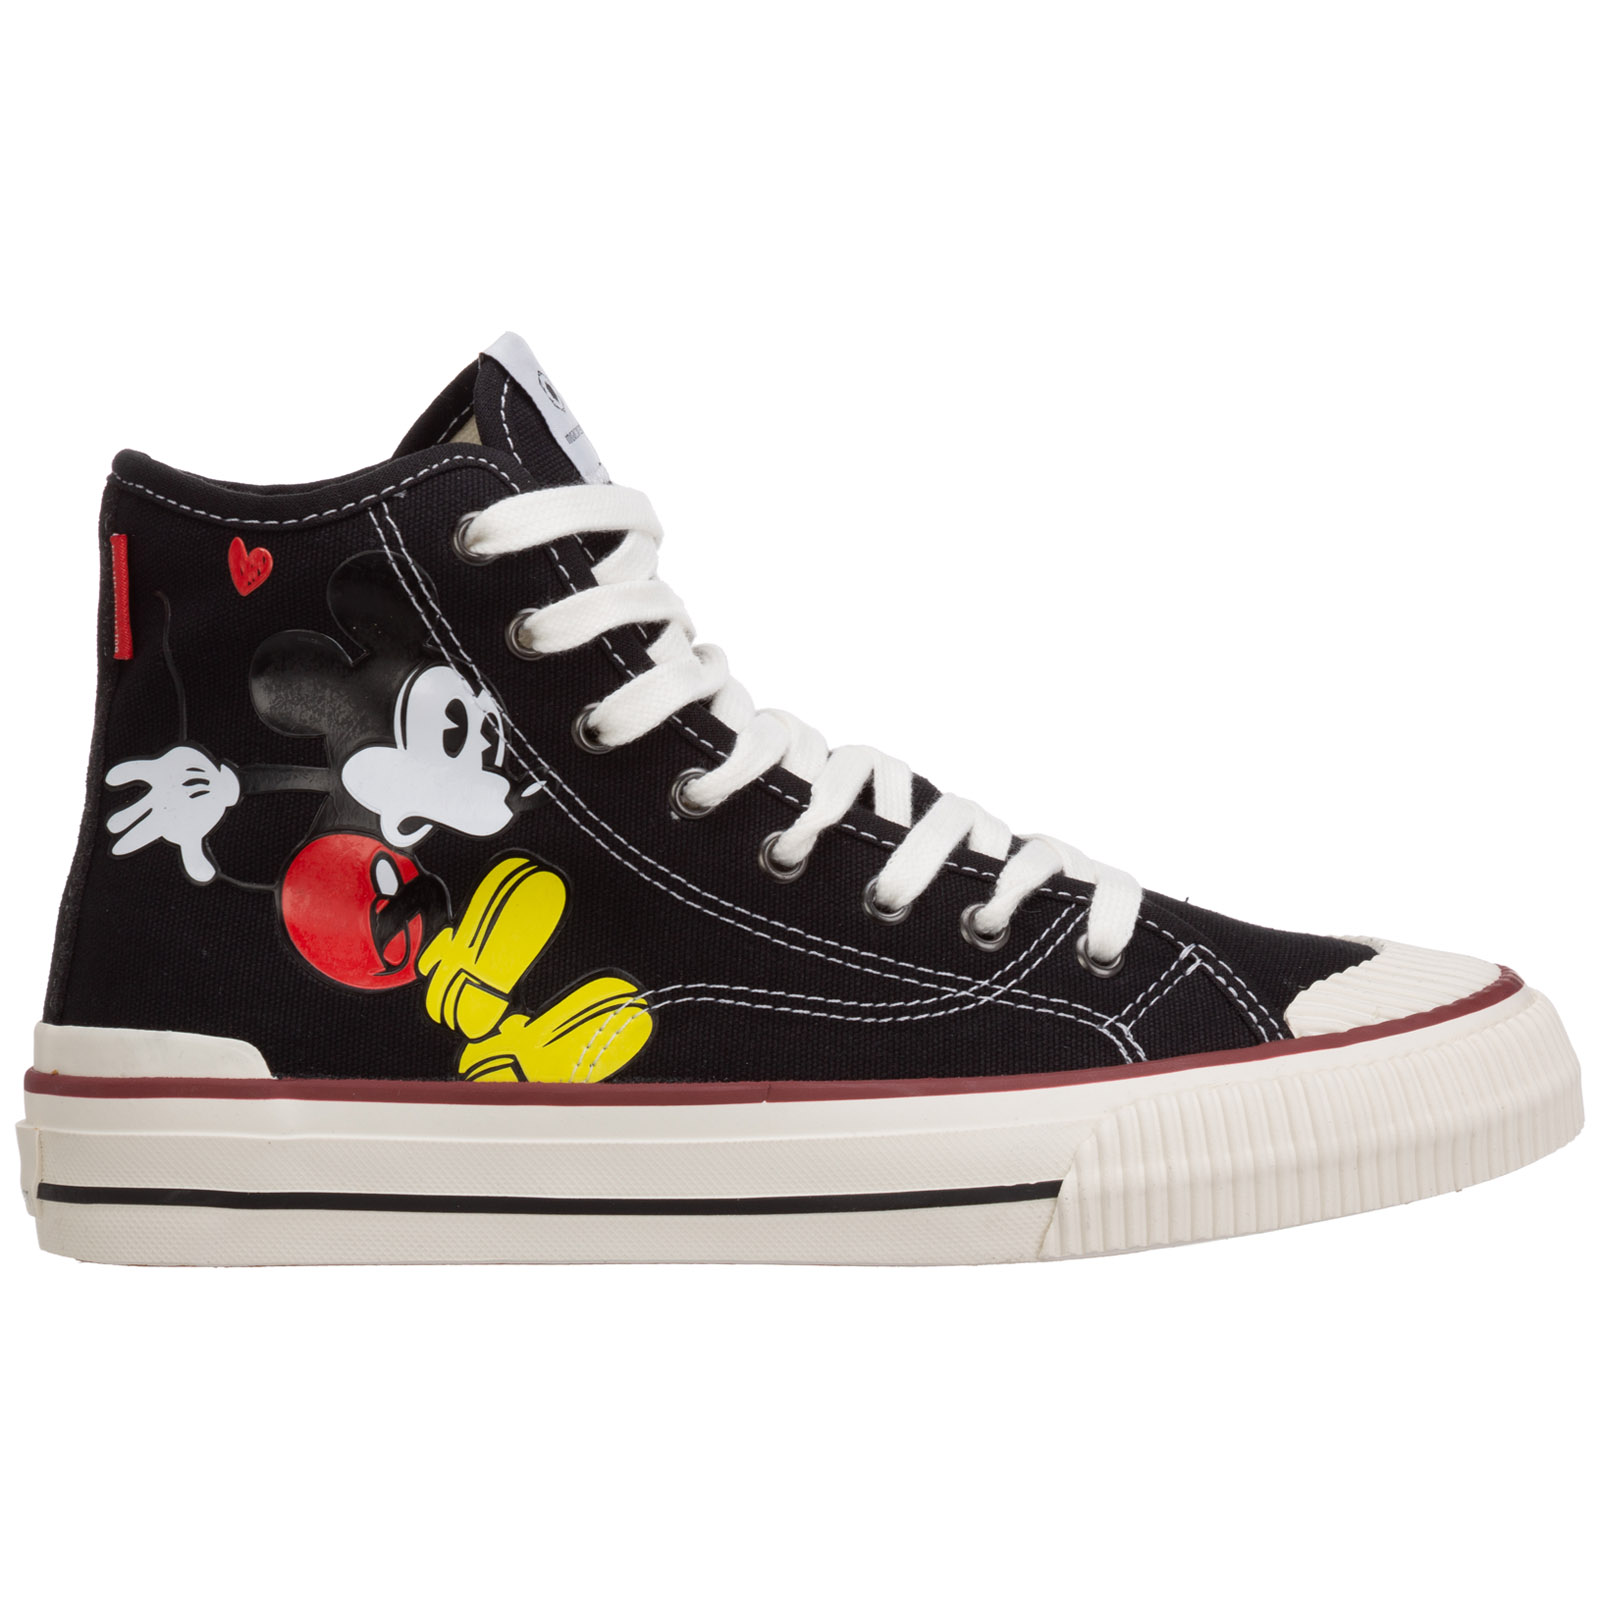 Moa Master Of Arts WOMEN'S SHOES HIGH TOP TRAINERS SNEAKERS  DISNEY MICKEY MOUSE